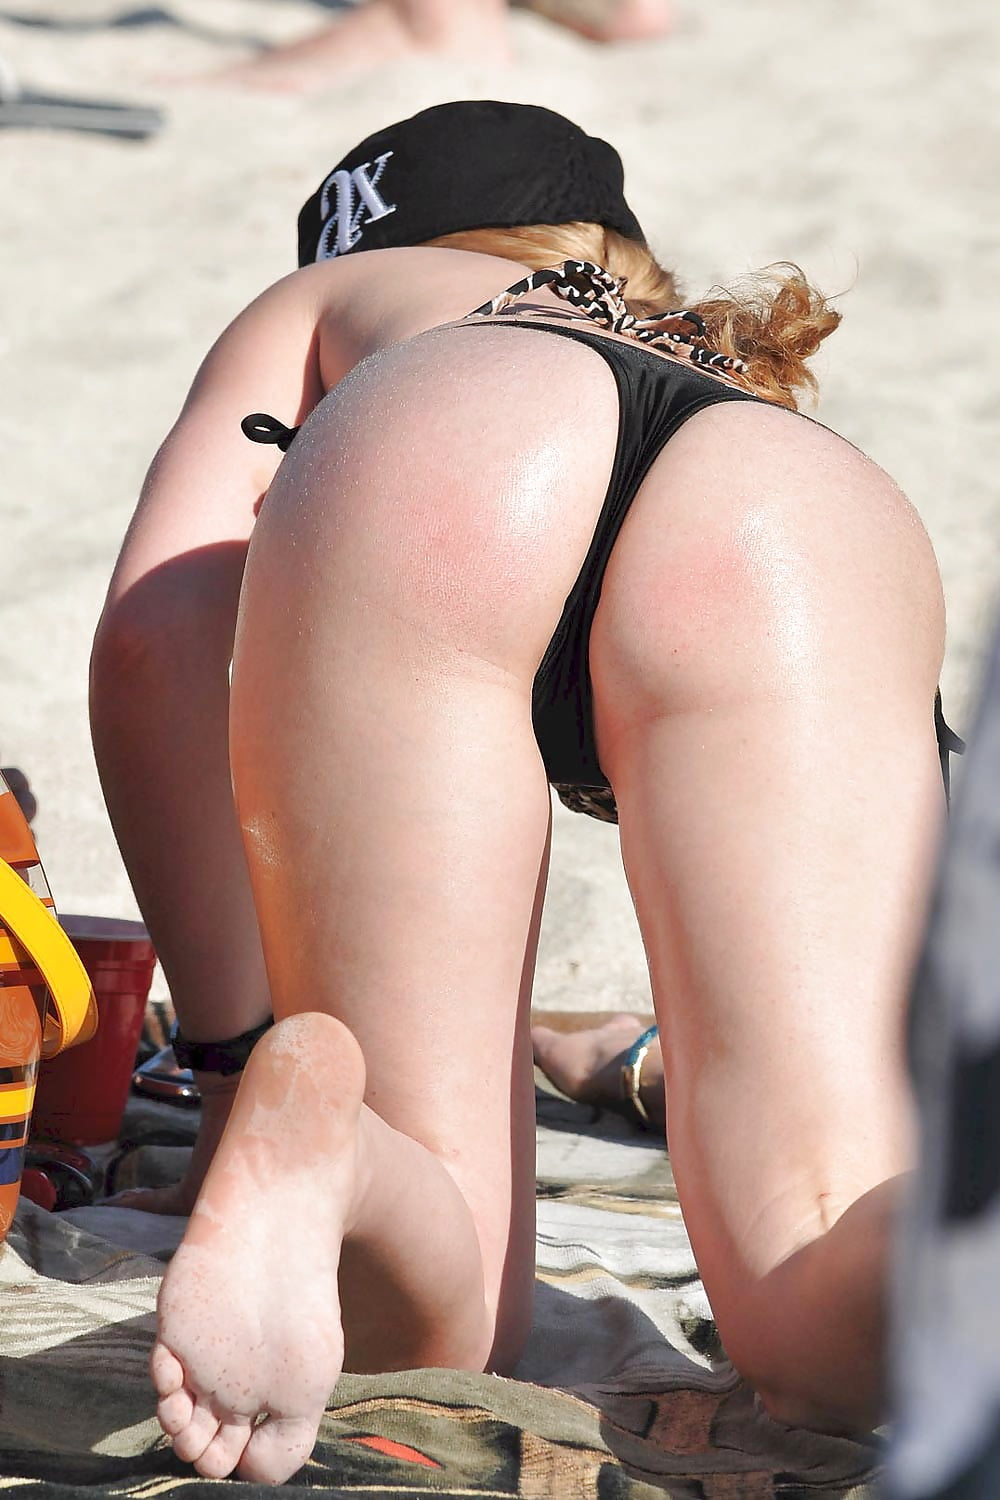 Pussies bent over south beach, widest hips ever